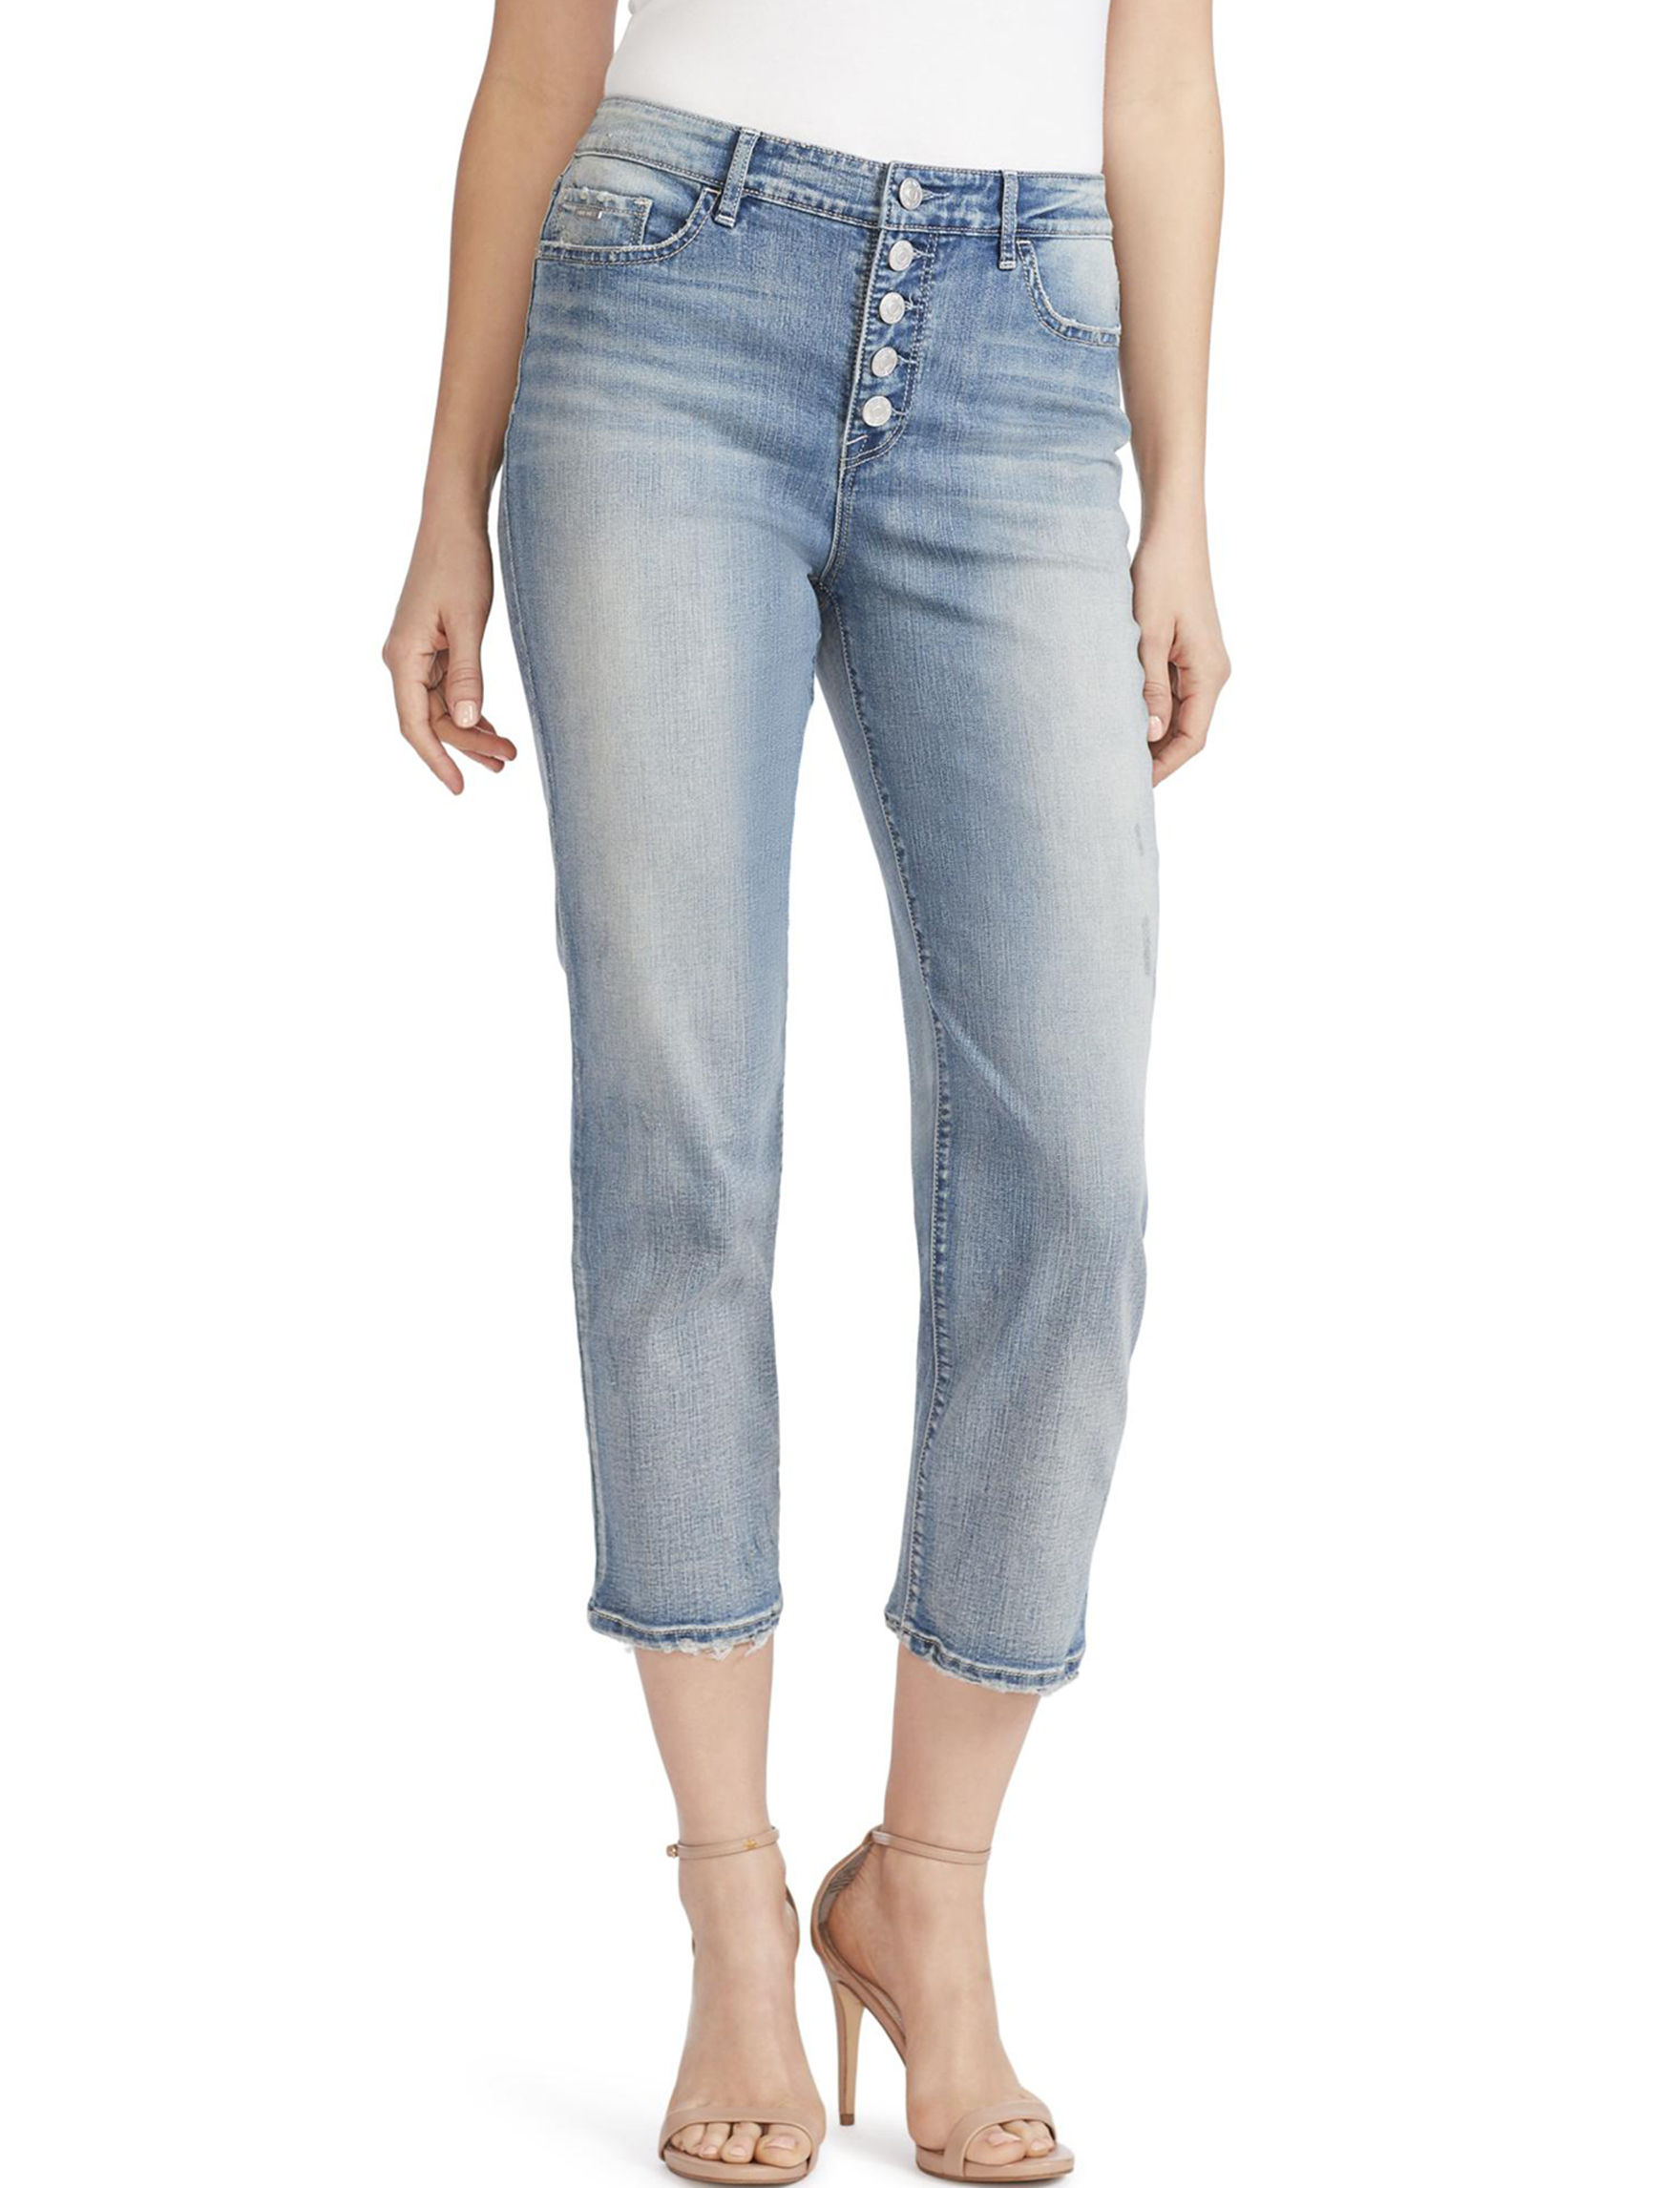 Nine West Mirage Capris & Crops Straight